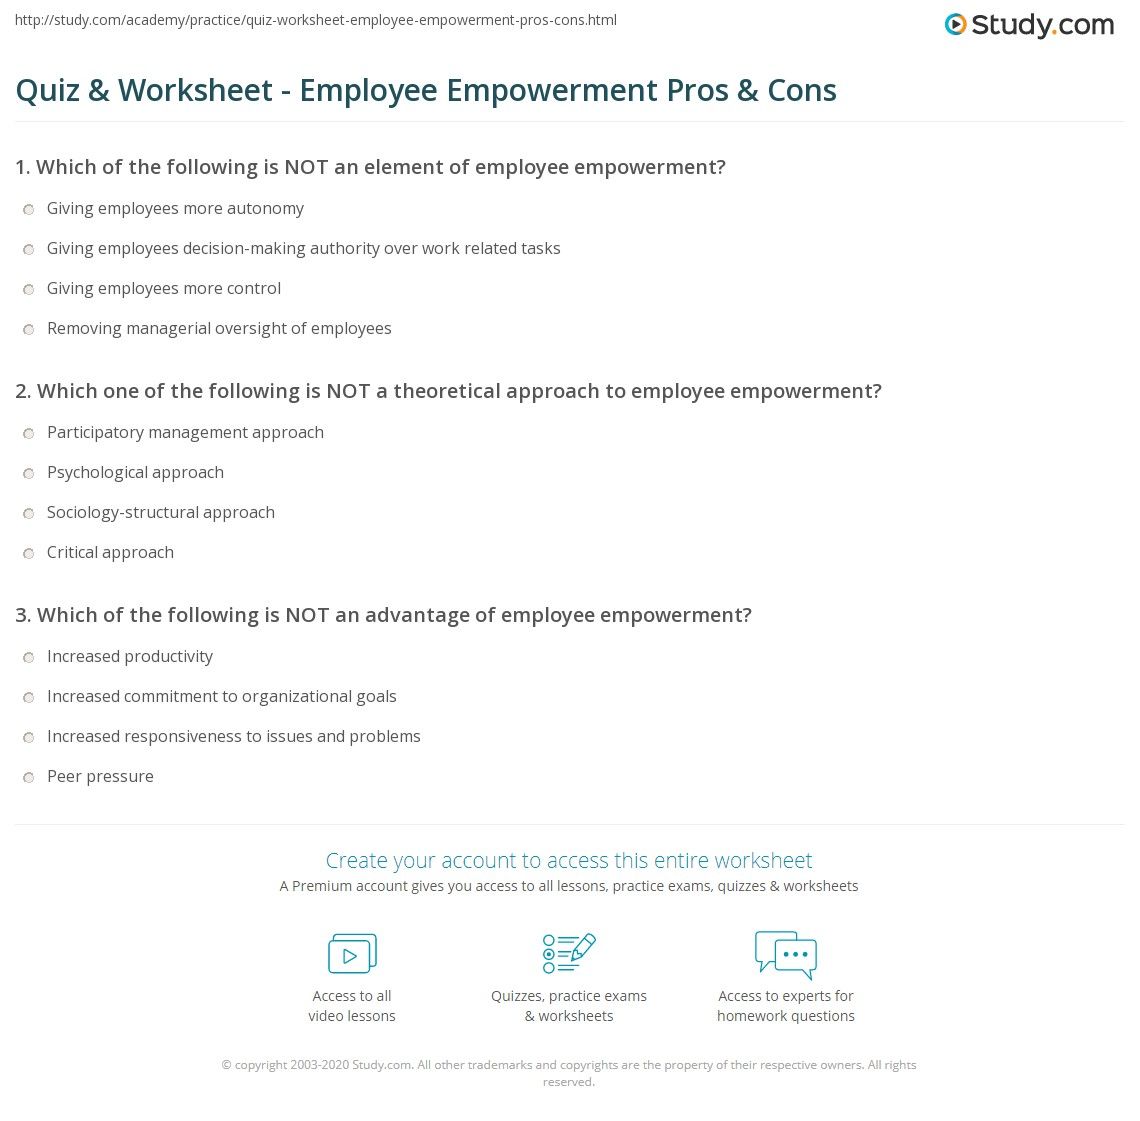 quiz & worksheet - employee empowerment pros & cons | study